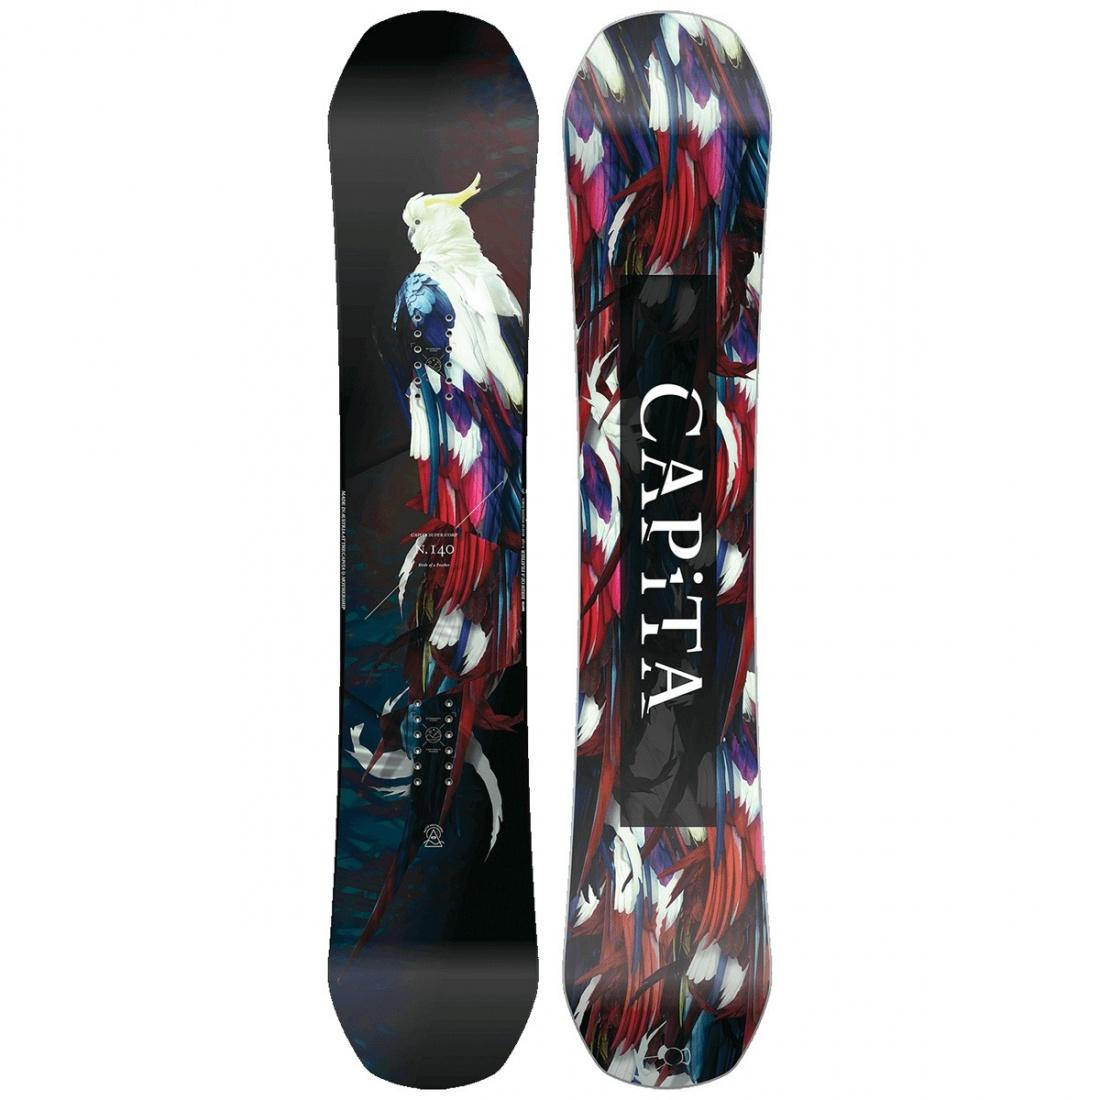 Женский сноуборд Capita Capita Birds Of a Feather от Boardshop-1